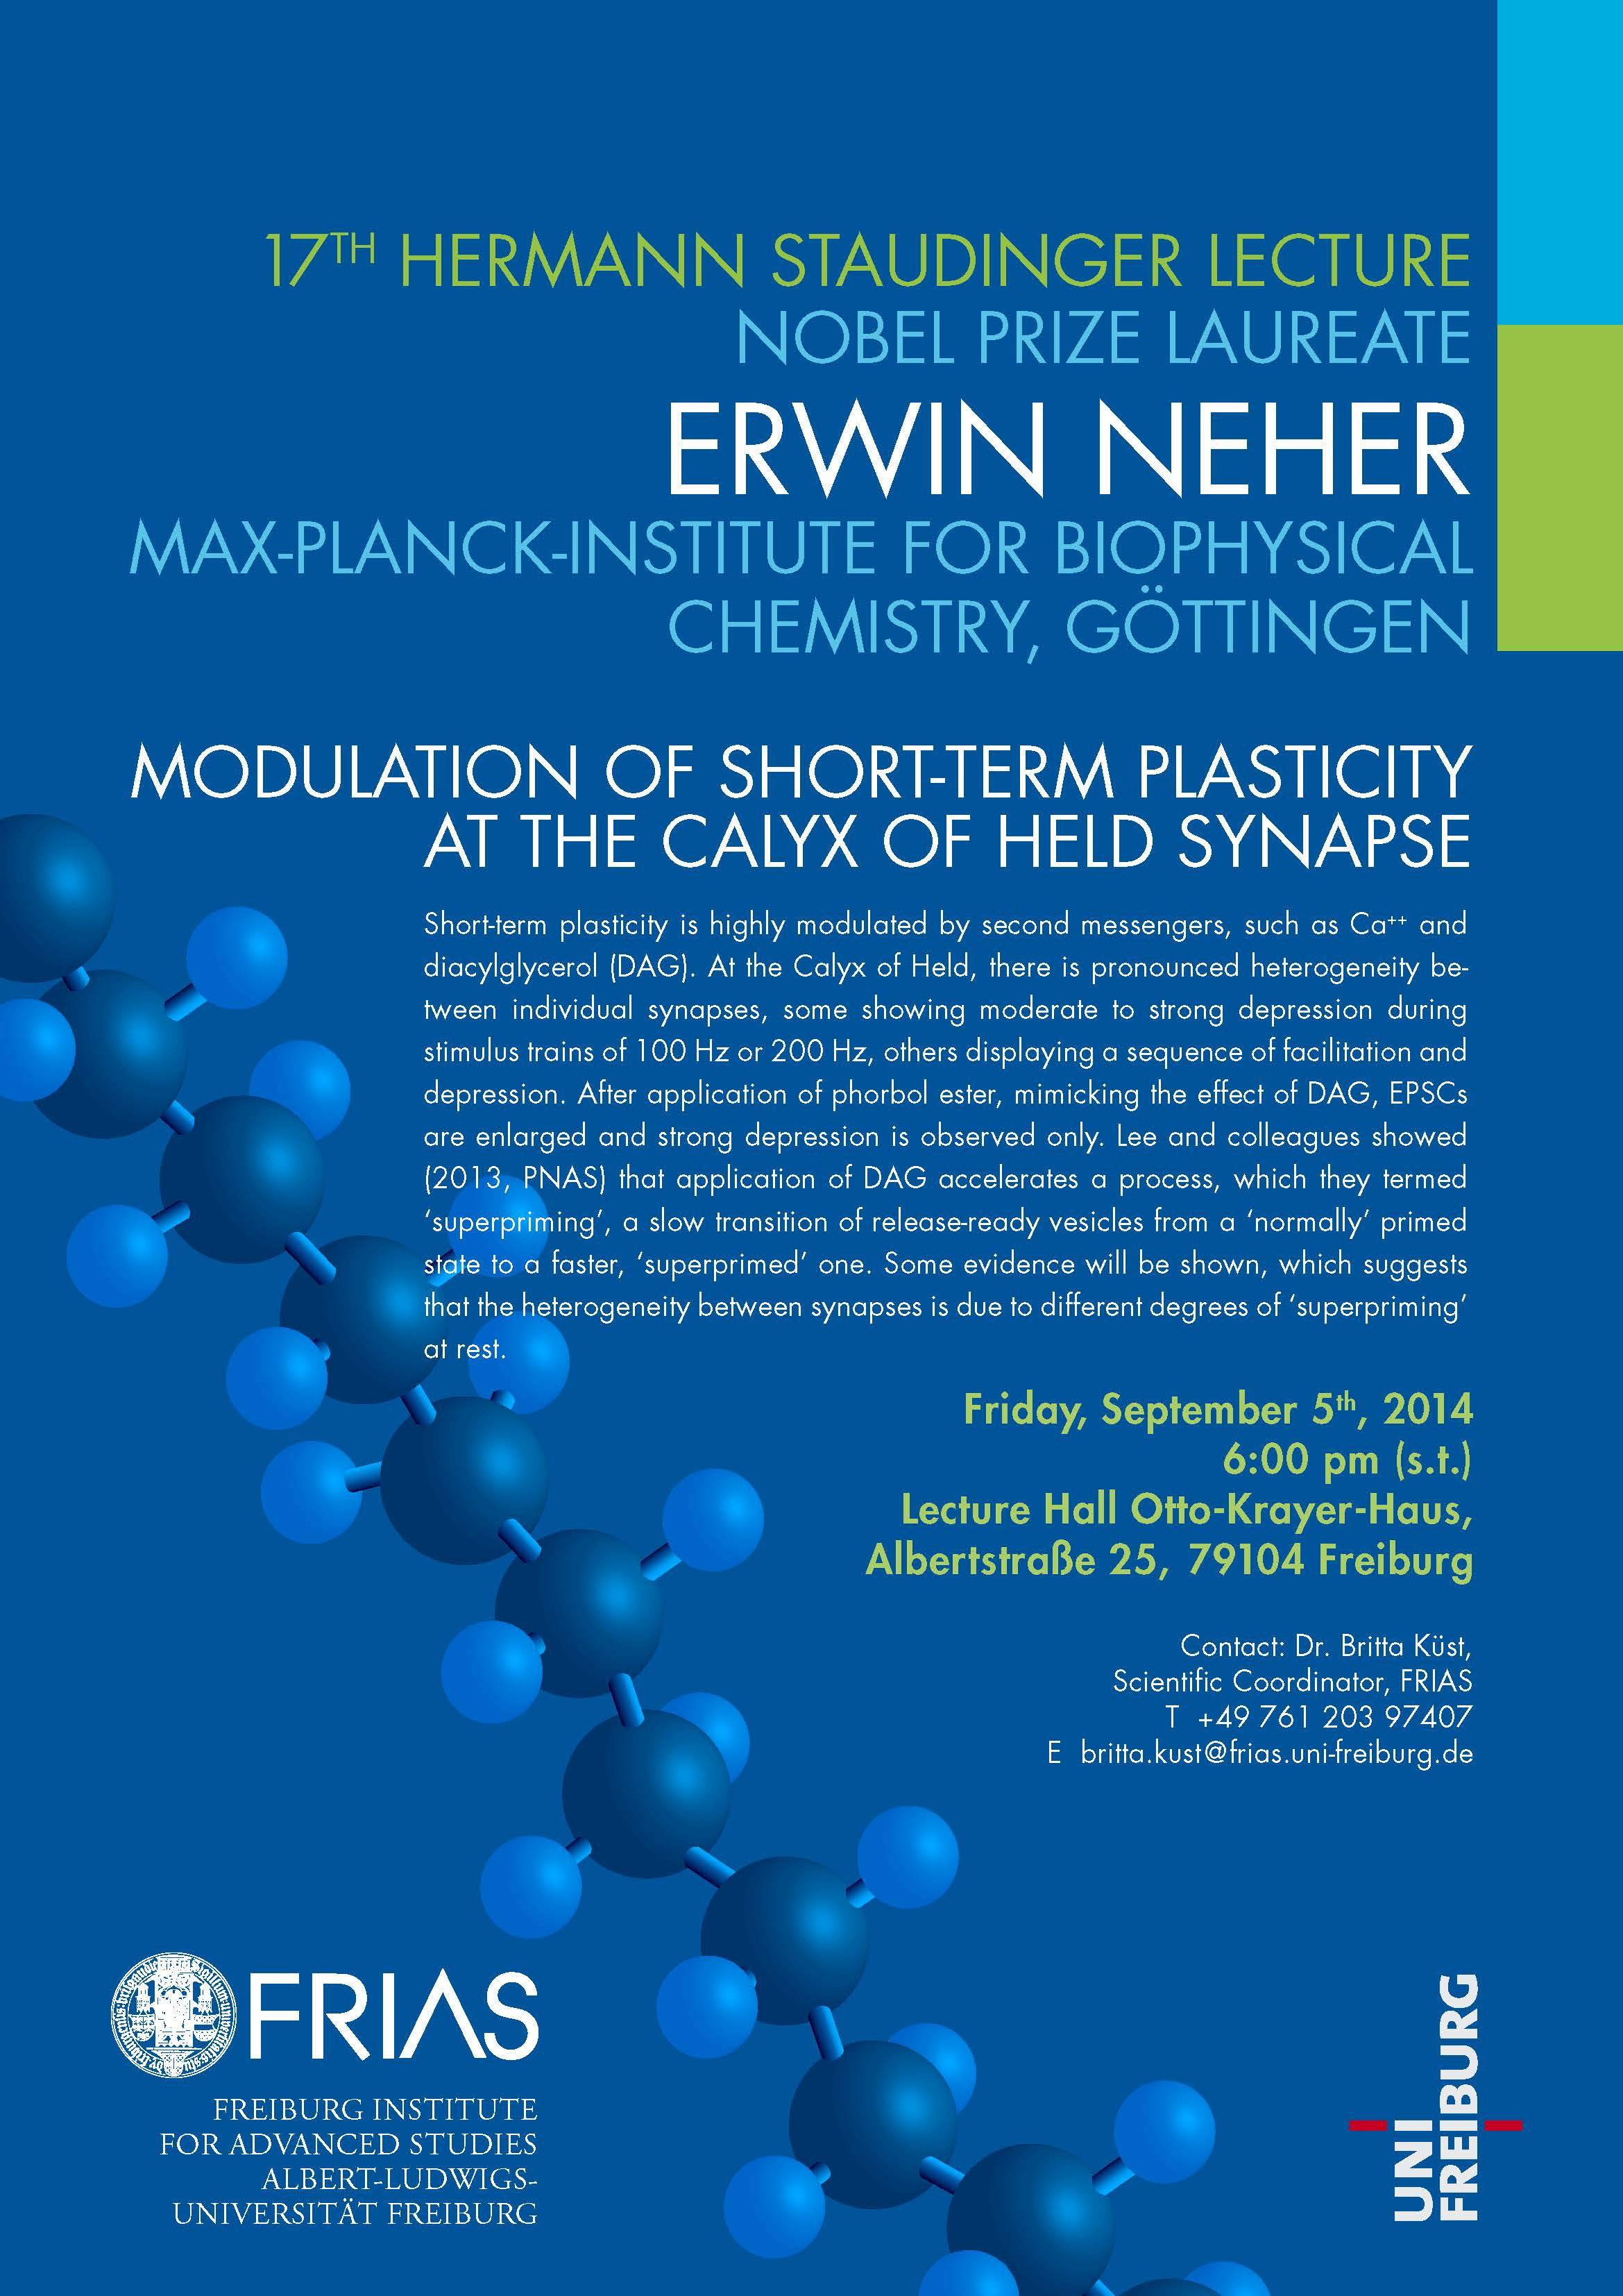 """17th Hermann Staudinger Lecture with Nobel Laureate Erwin Neher: """"Modulation of Short-Term Plasticity at the Calyx of Held Synapse"""""""